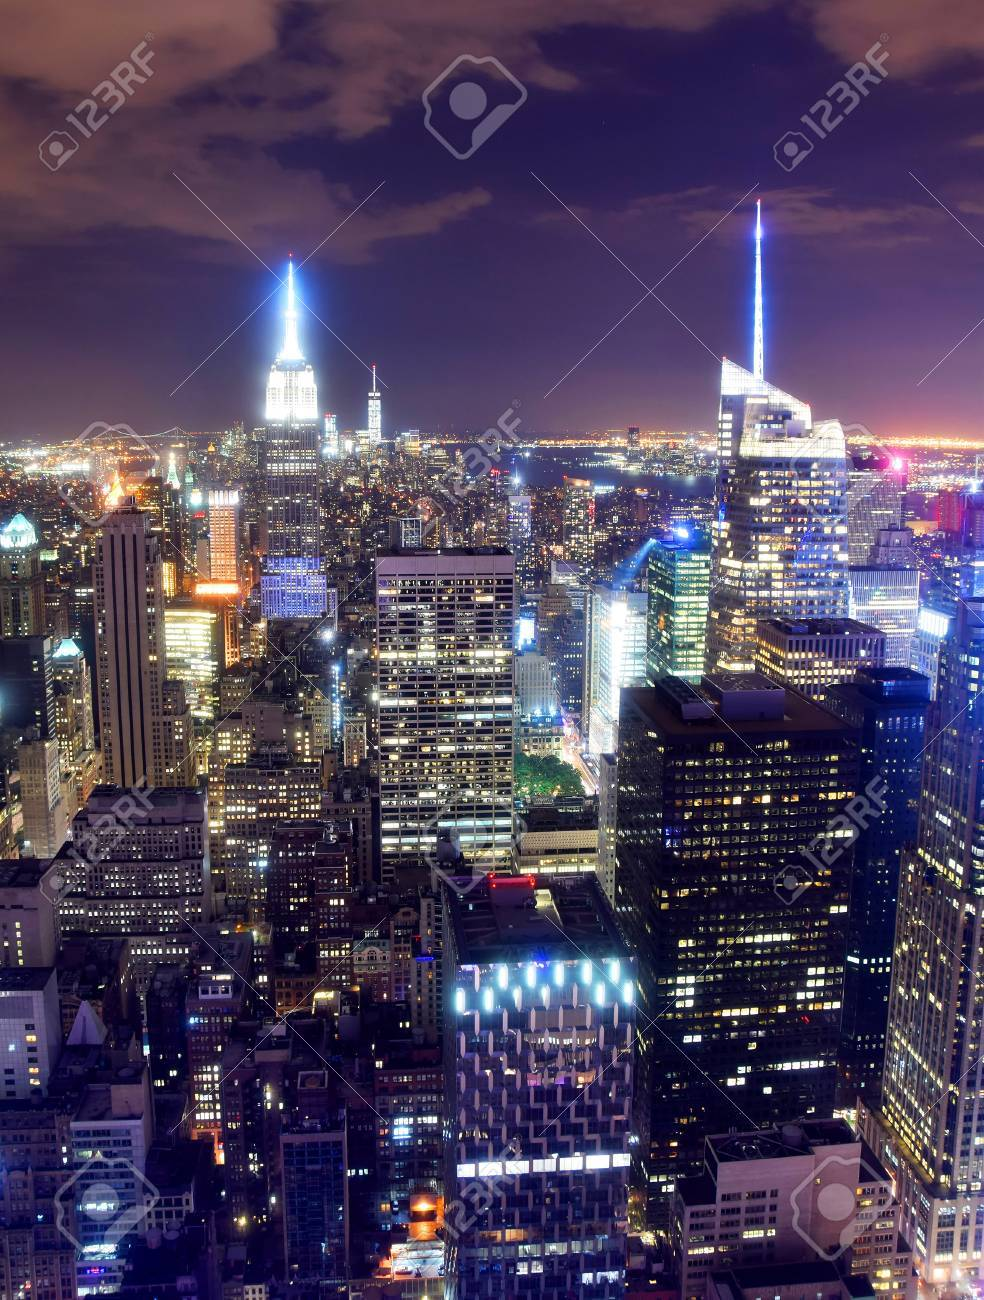 Nighttime New York City Skyline From Above Stock Photo Picture And Royalty Free Image Image 43590934